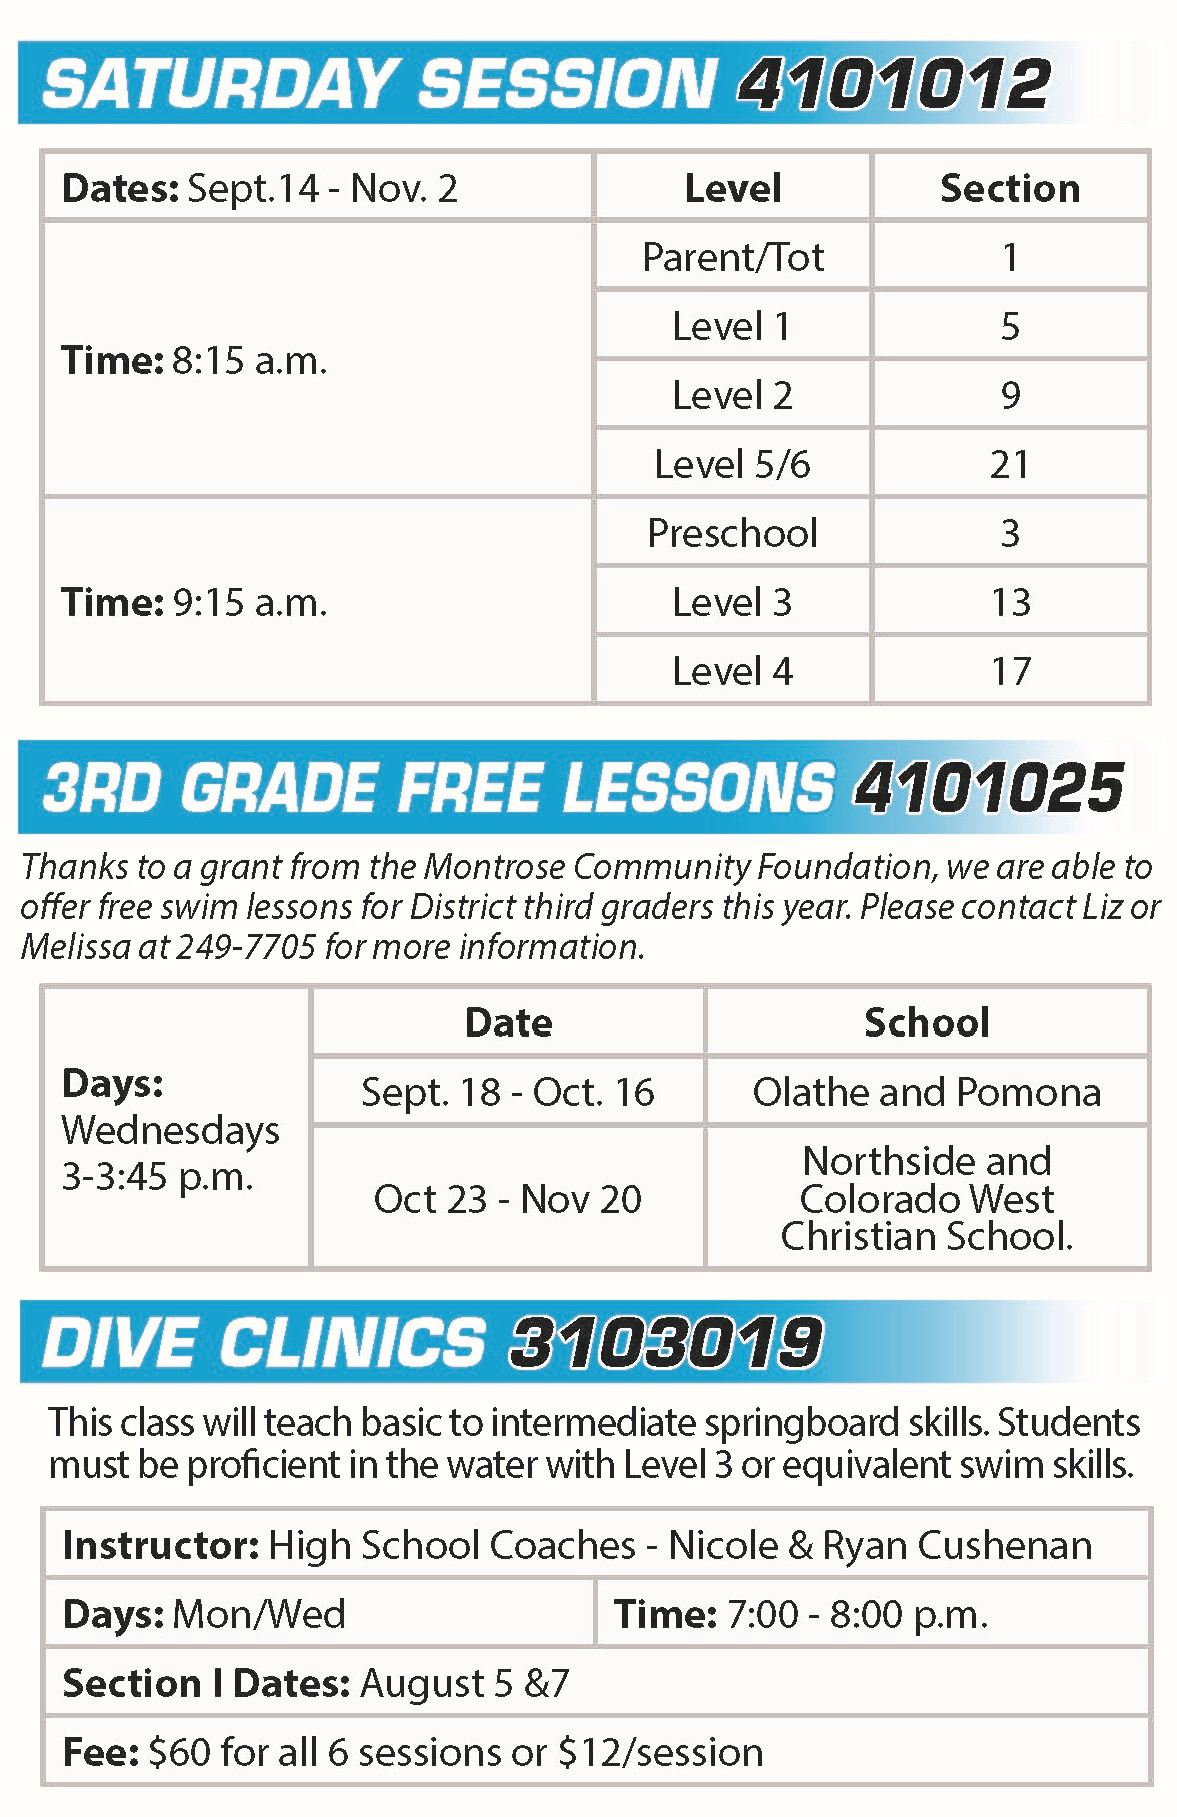 19-MRD-Fall-Guide final images_Page_25 1